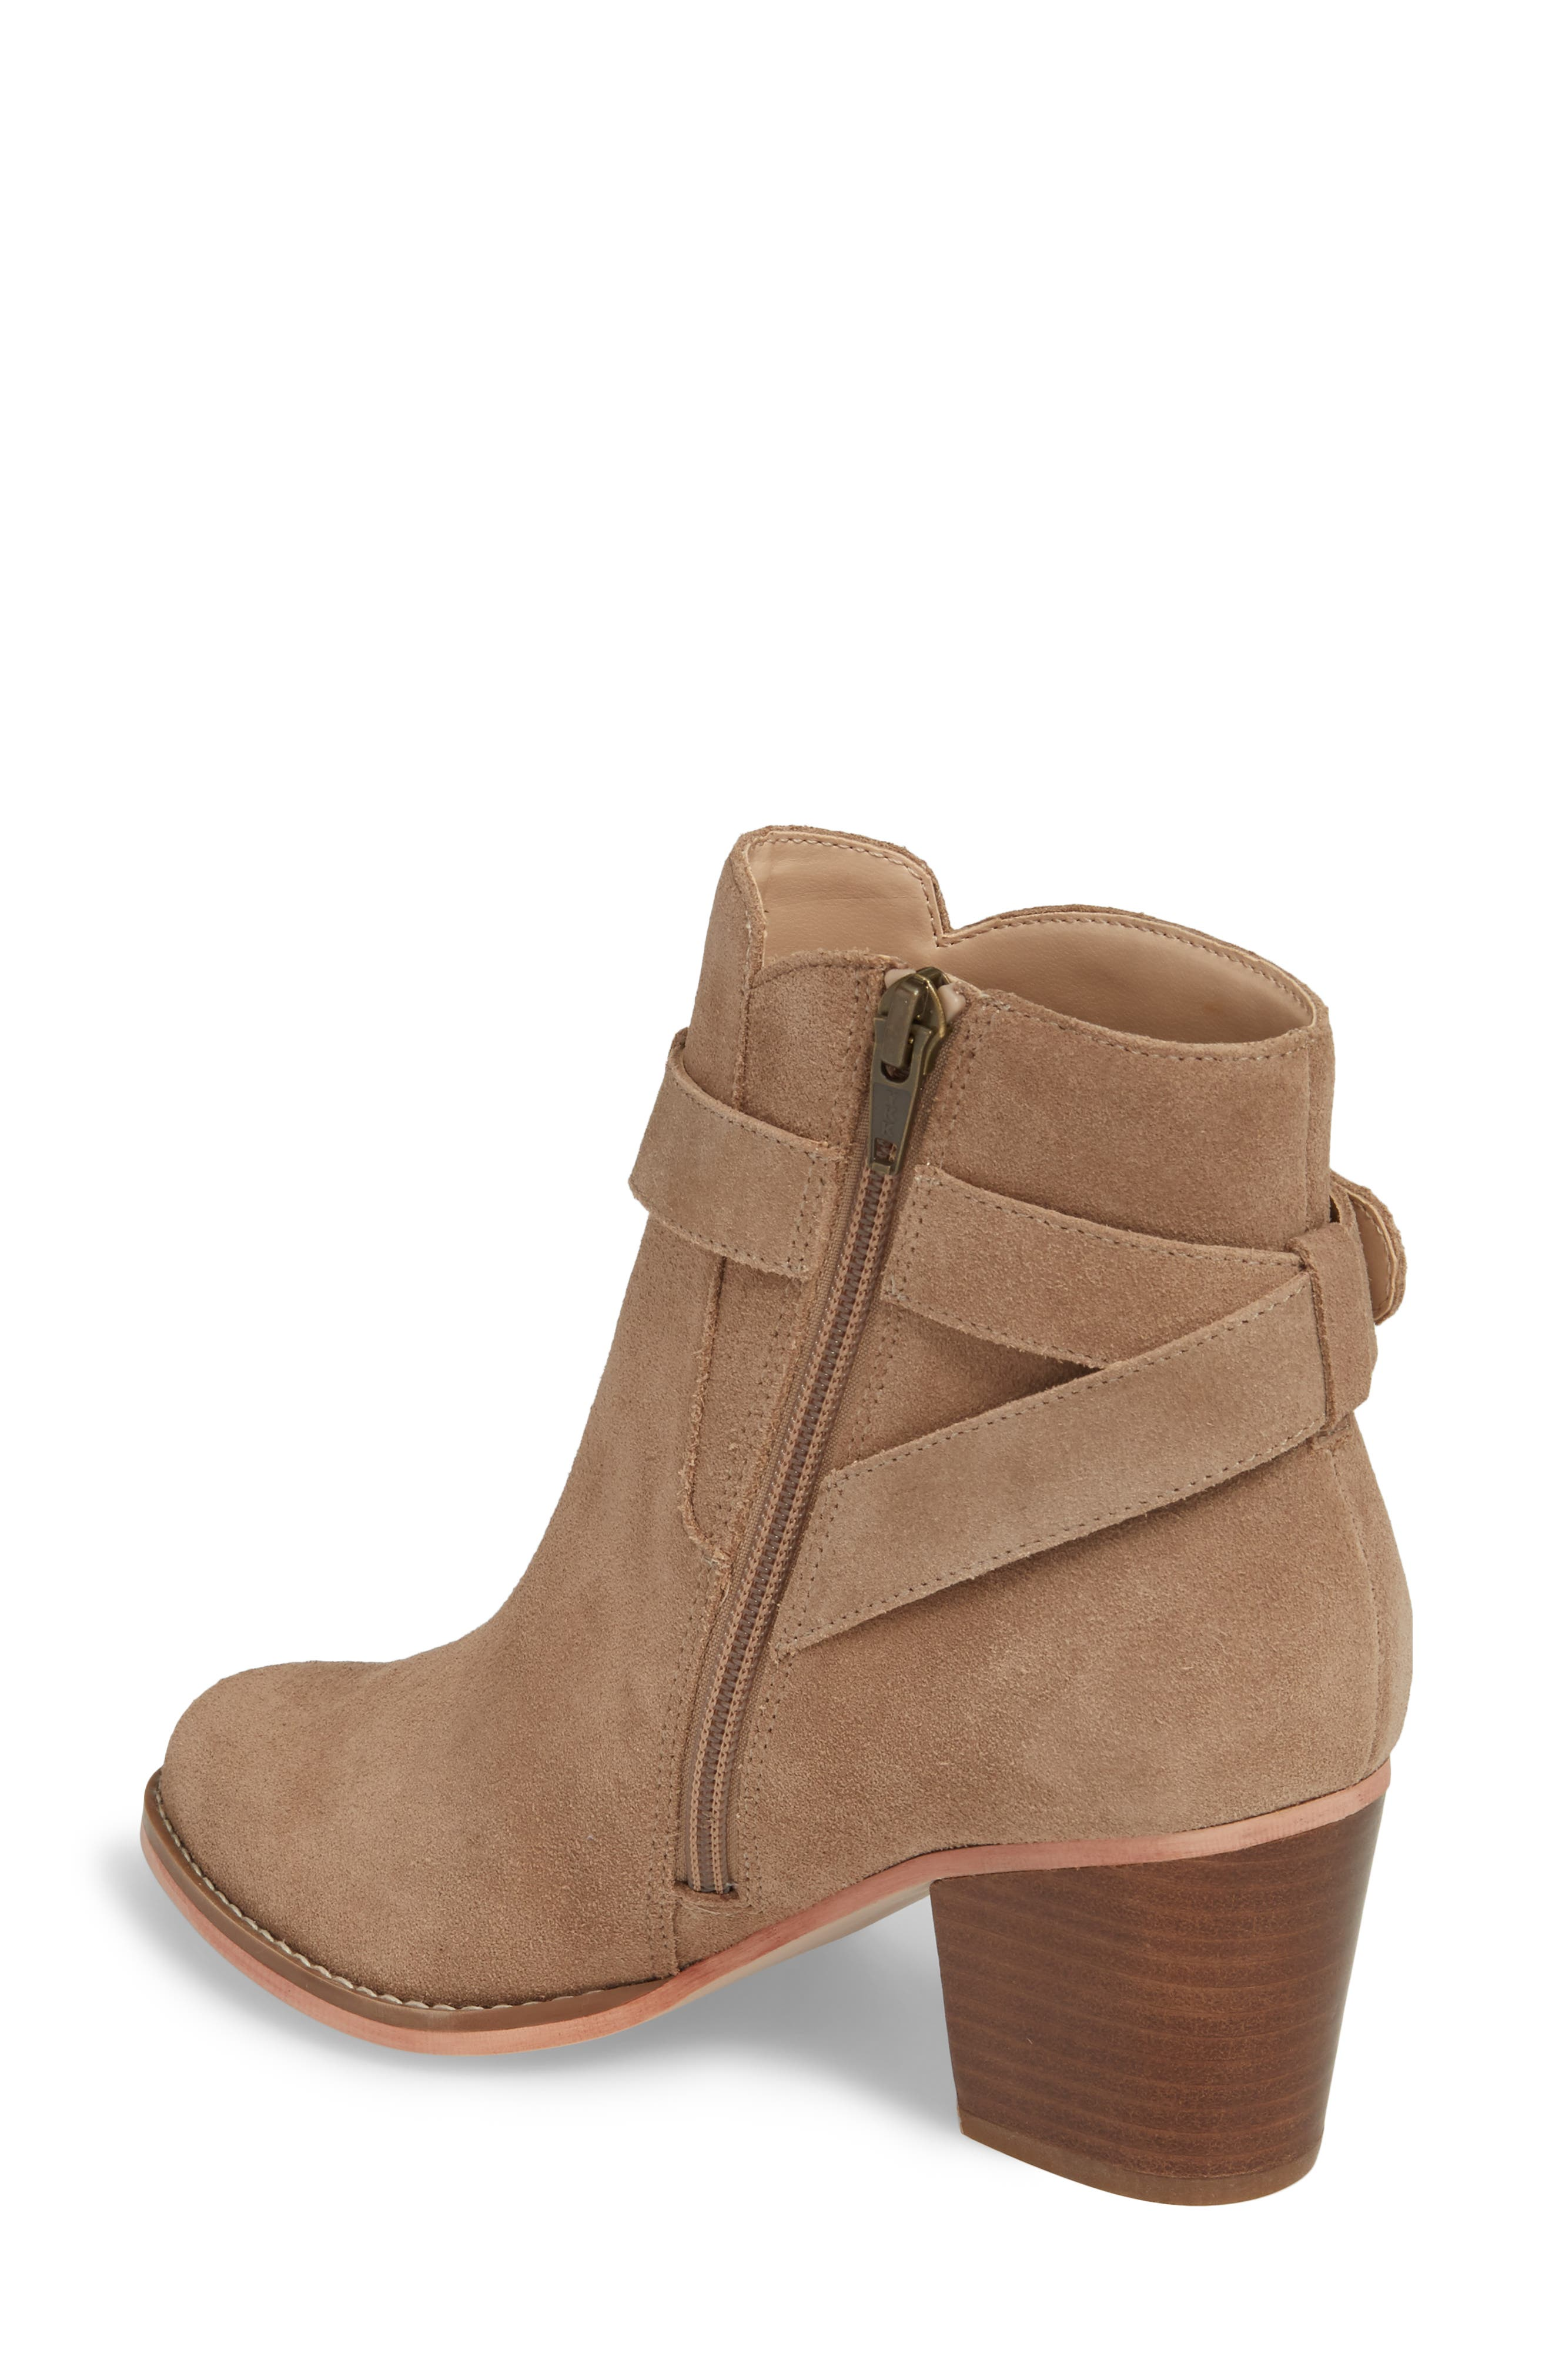 Alternate Image 2  - Sole Society Paislee Buckle Strap Bootie (Women)